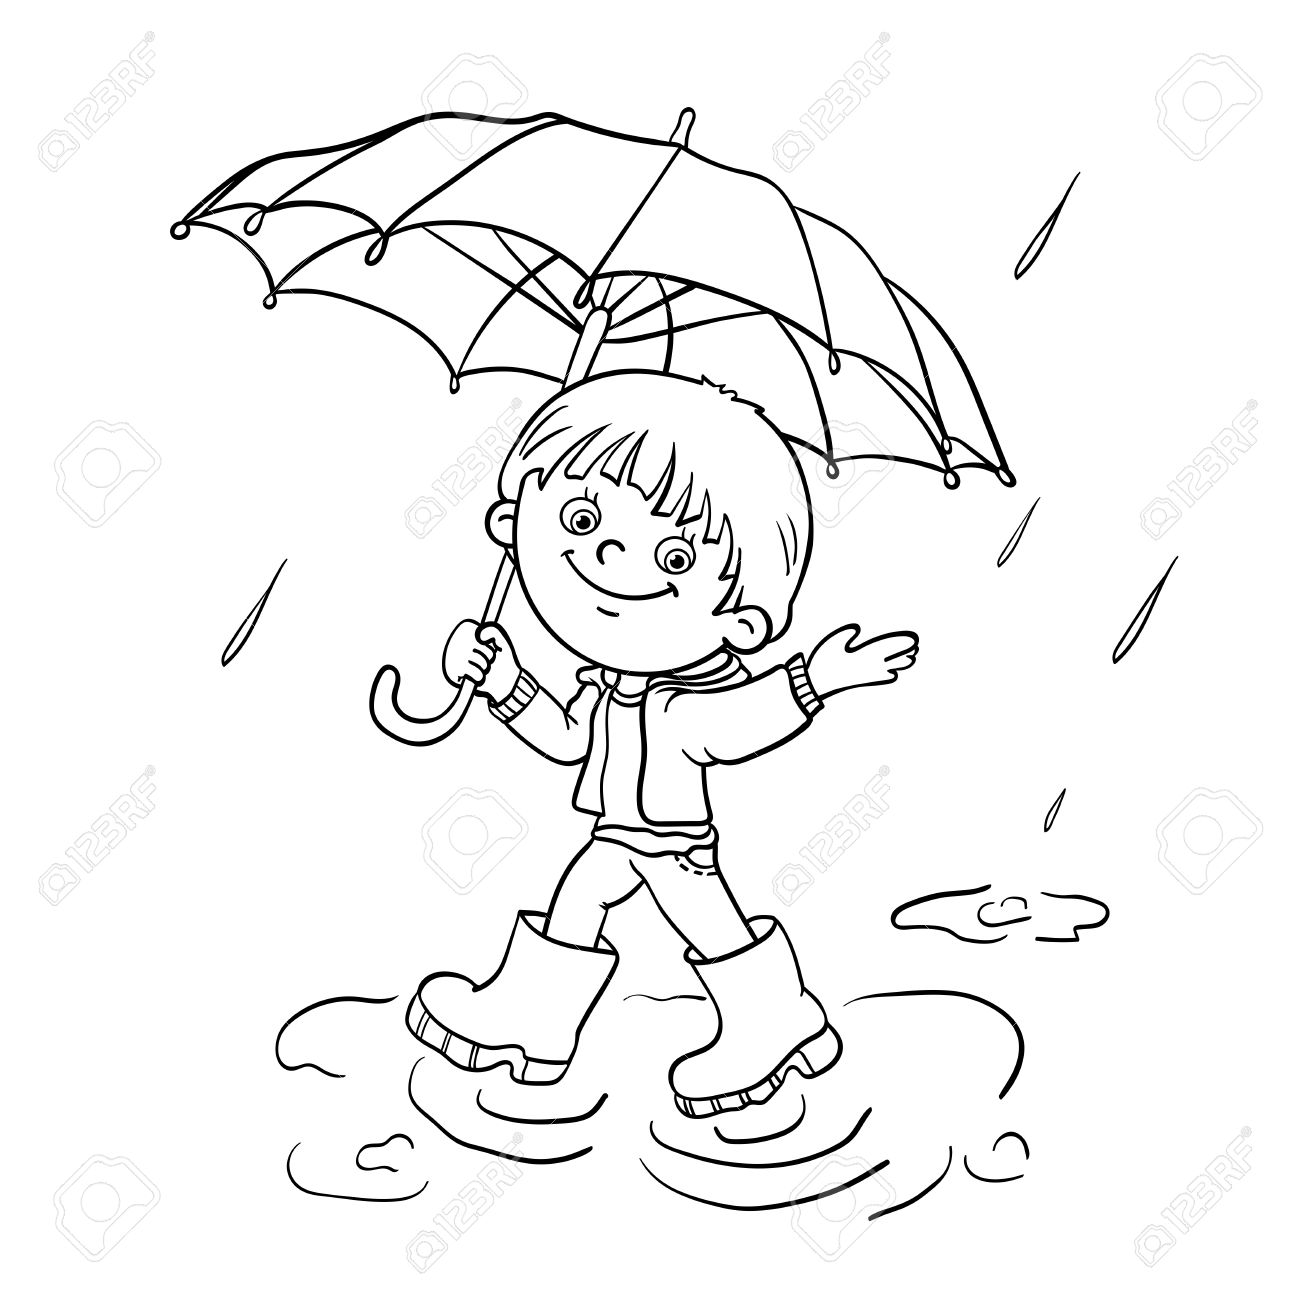 Coloring Page Outline Of A Cartoon Joyful Boy Walking In The ...